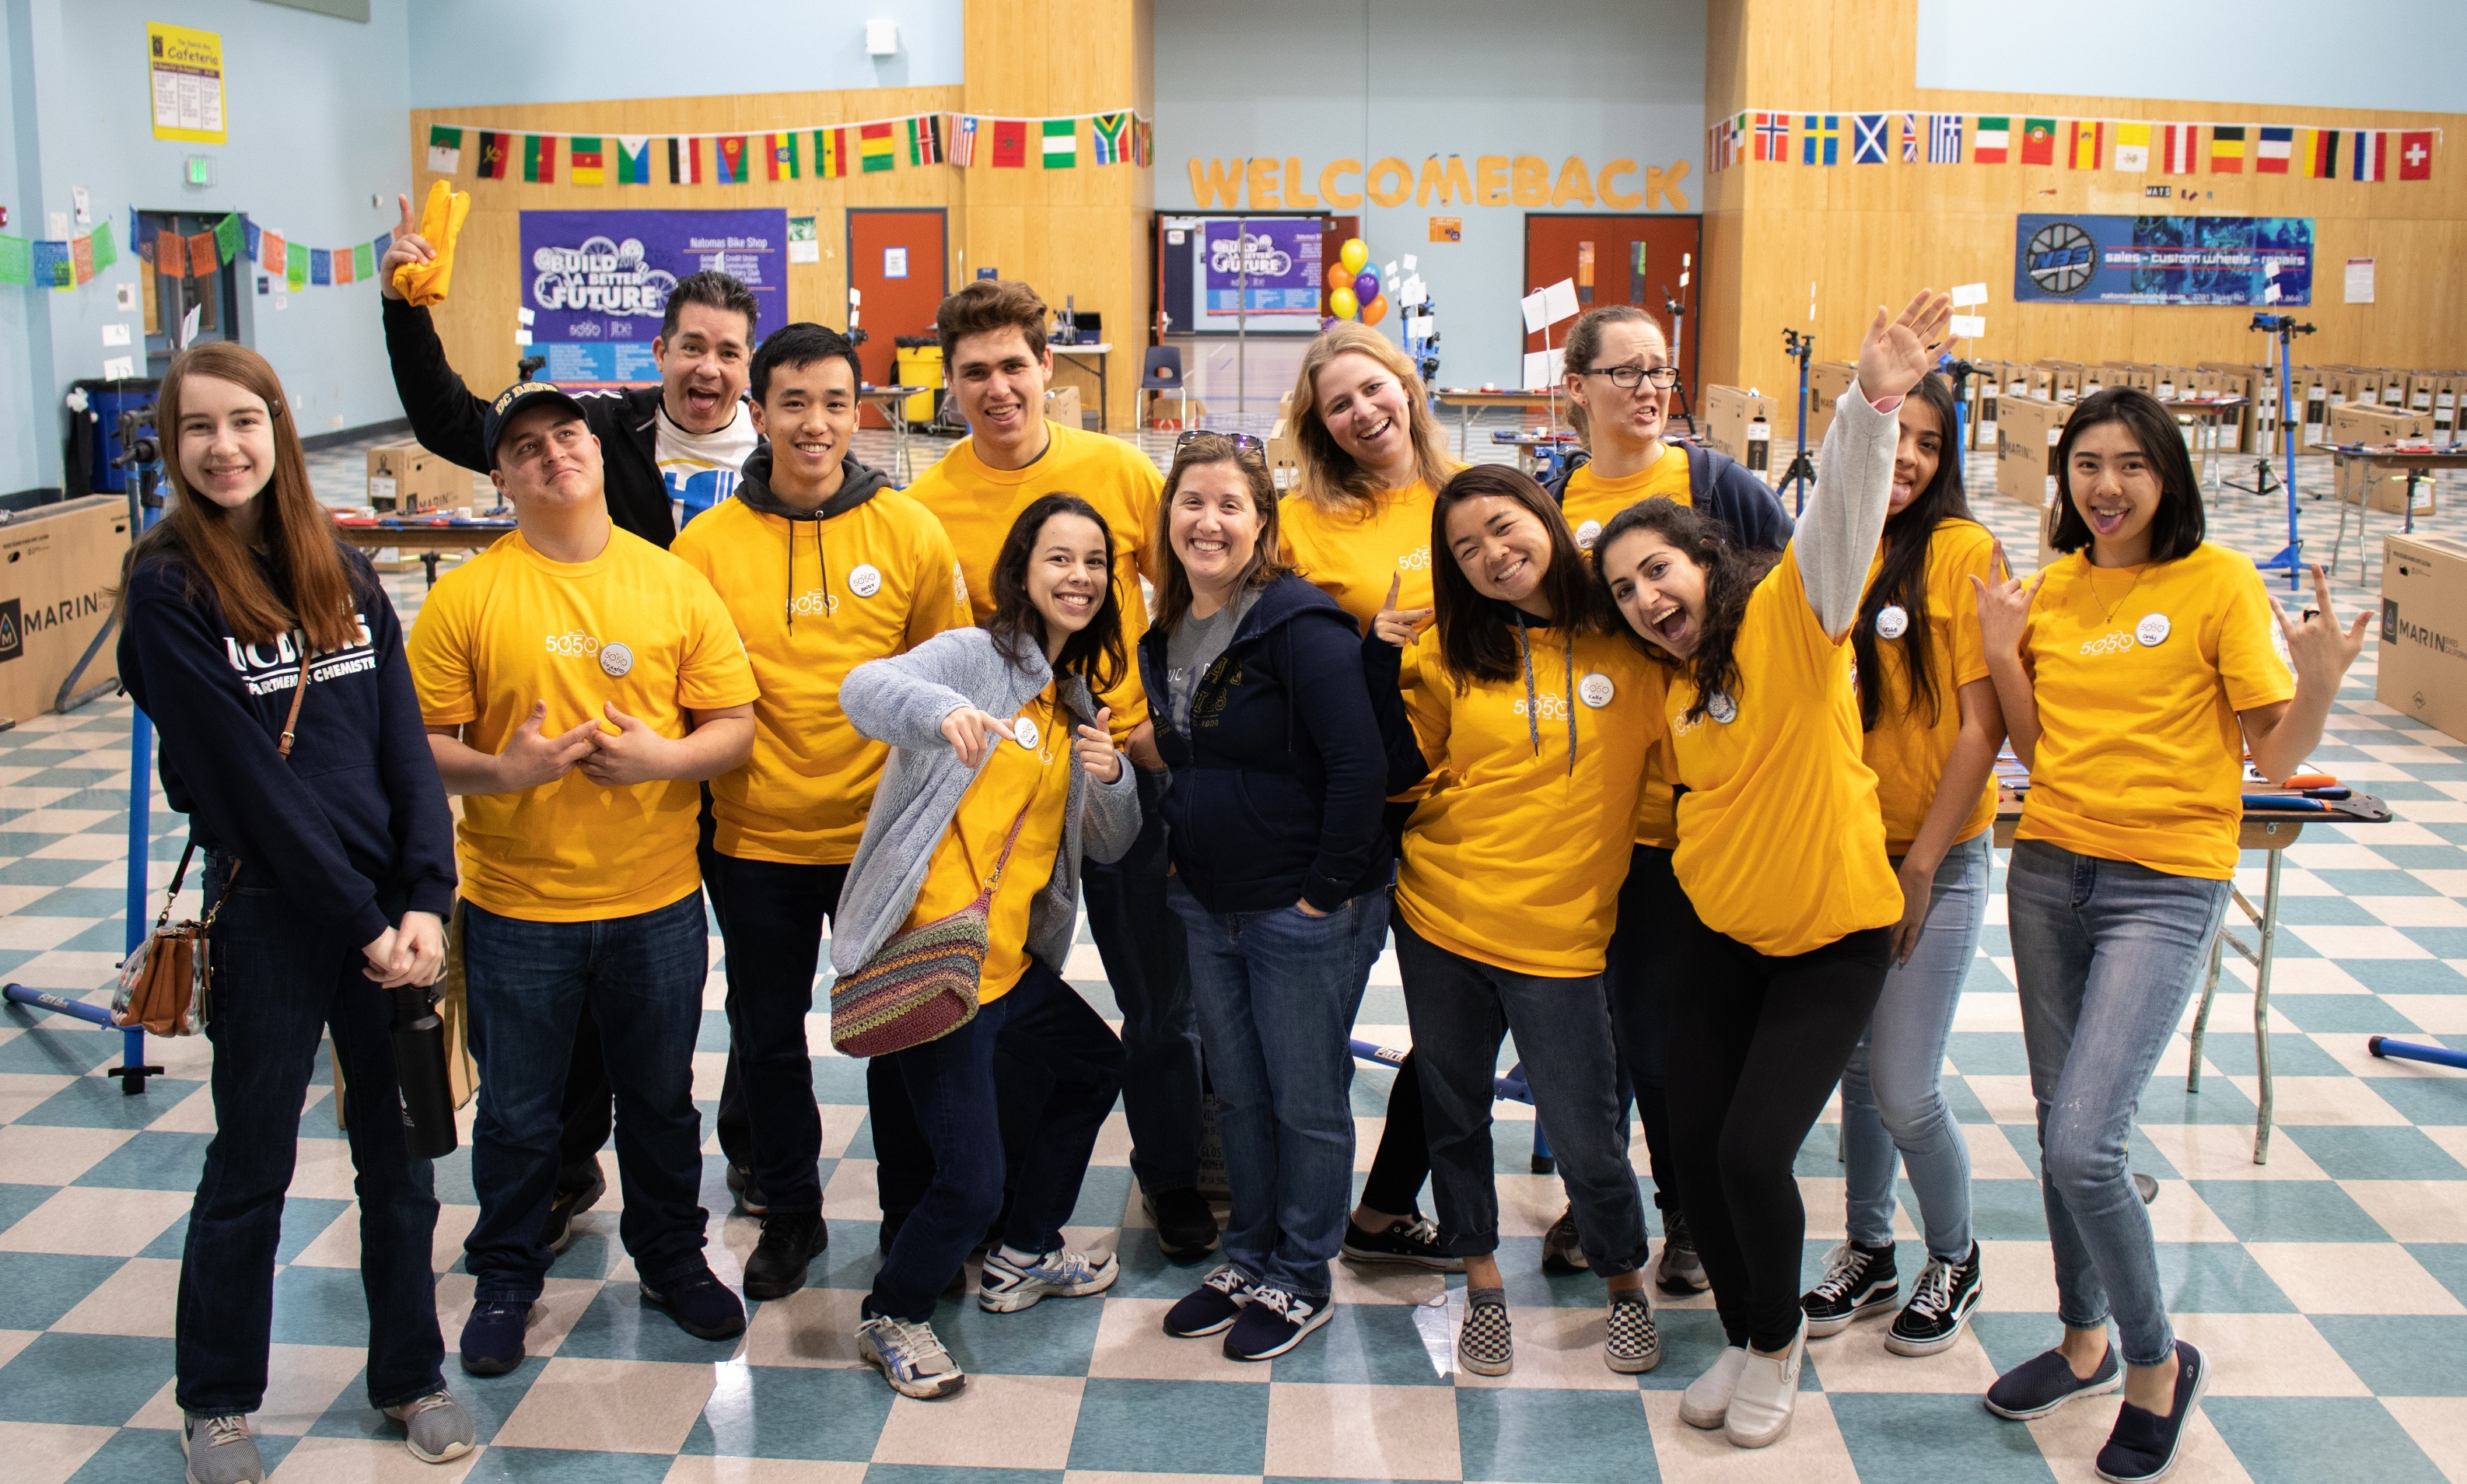 University Honors Program students and staff volunteer at 50 Bikes for 50 Kids on Martin Luther King Jr. Day in January 2019.